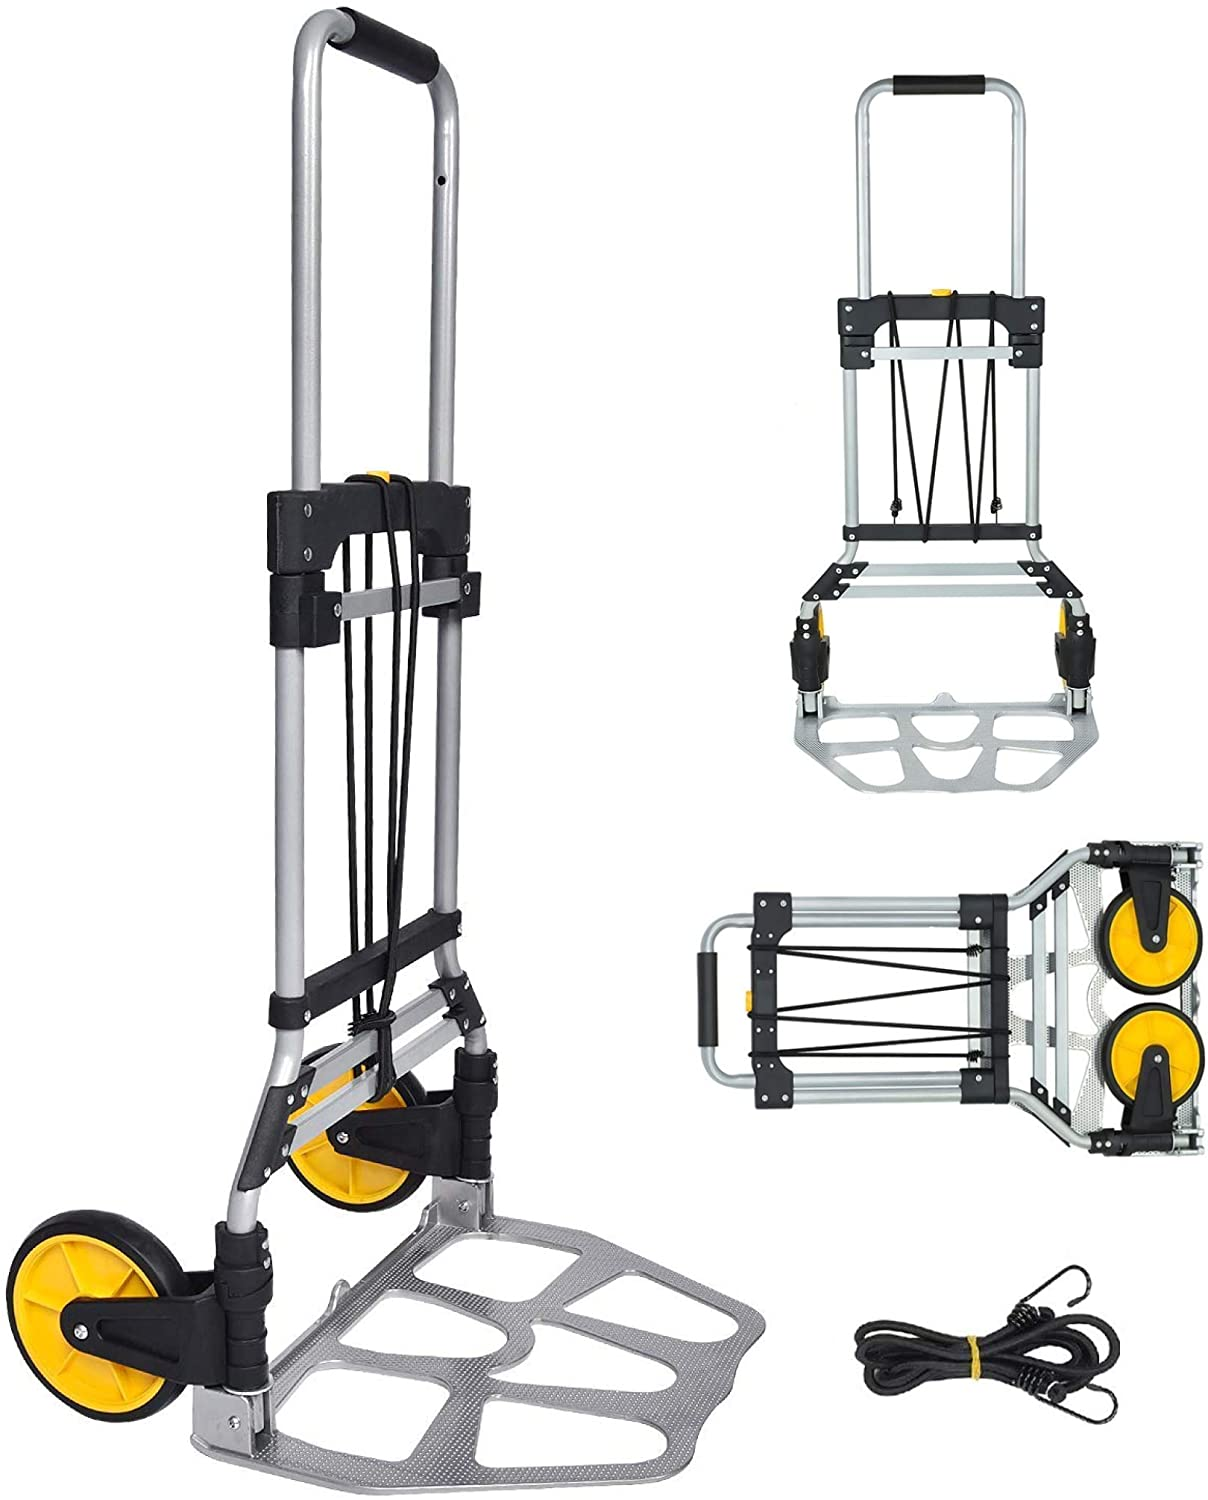 FULLWATT 264 Lb. Capacity Folding Hand Truck and Dolly Cart Aluminum